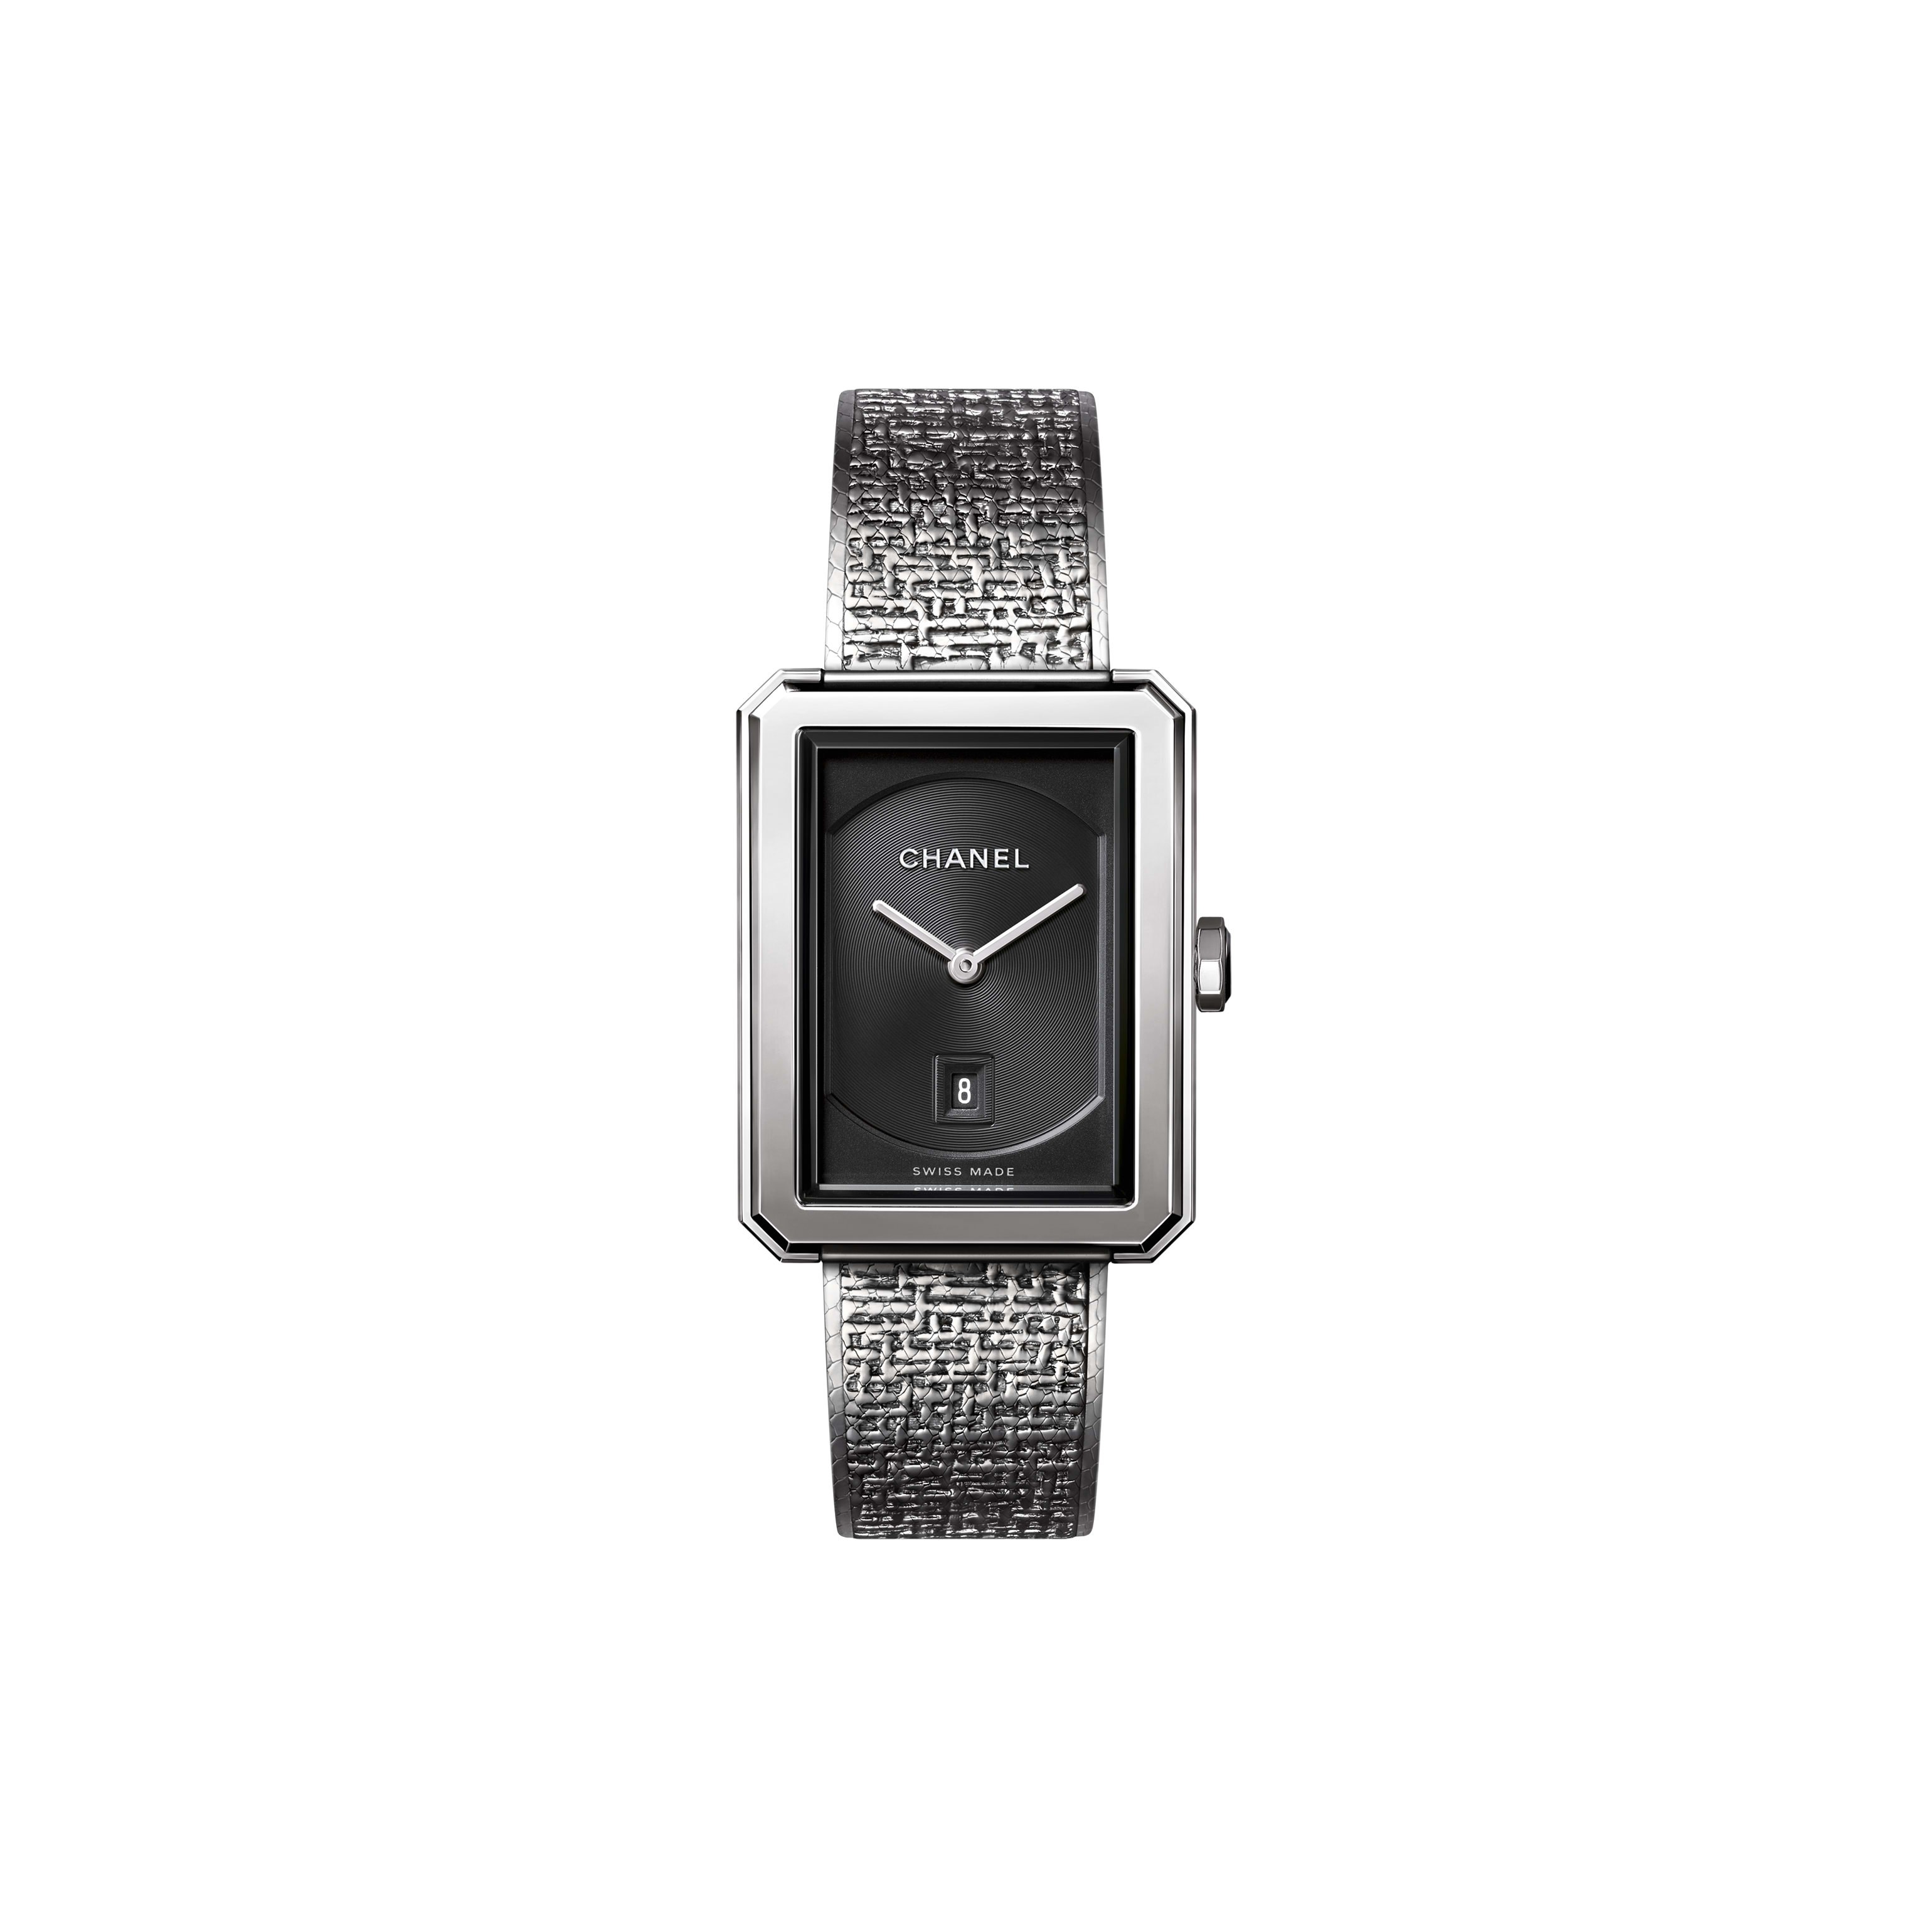 BOY·FRIEND TWEED Watch - Medium version, steel - CHANEL - Default view - see standard sized version